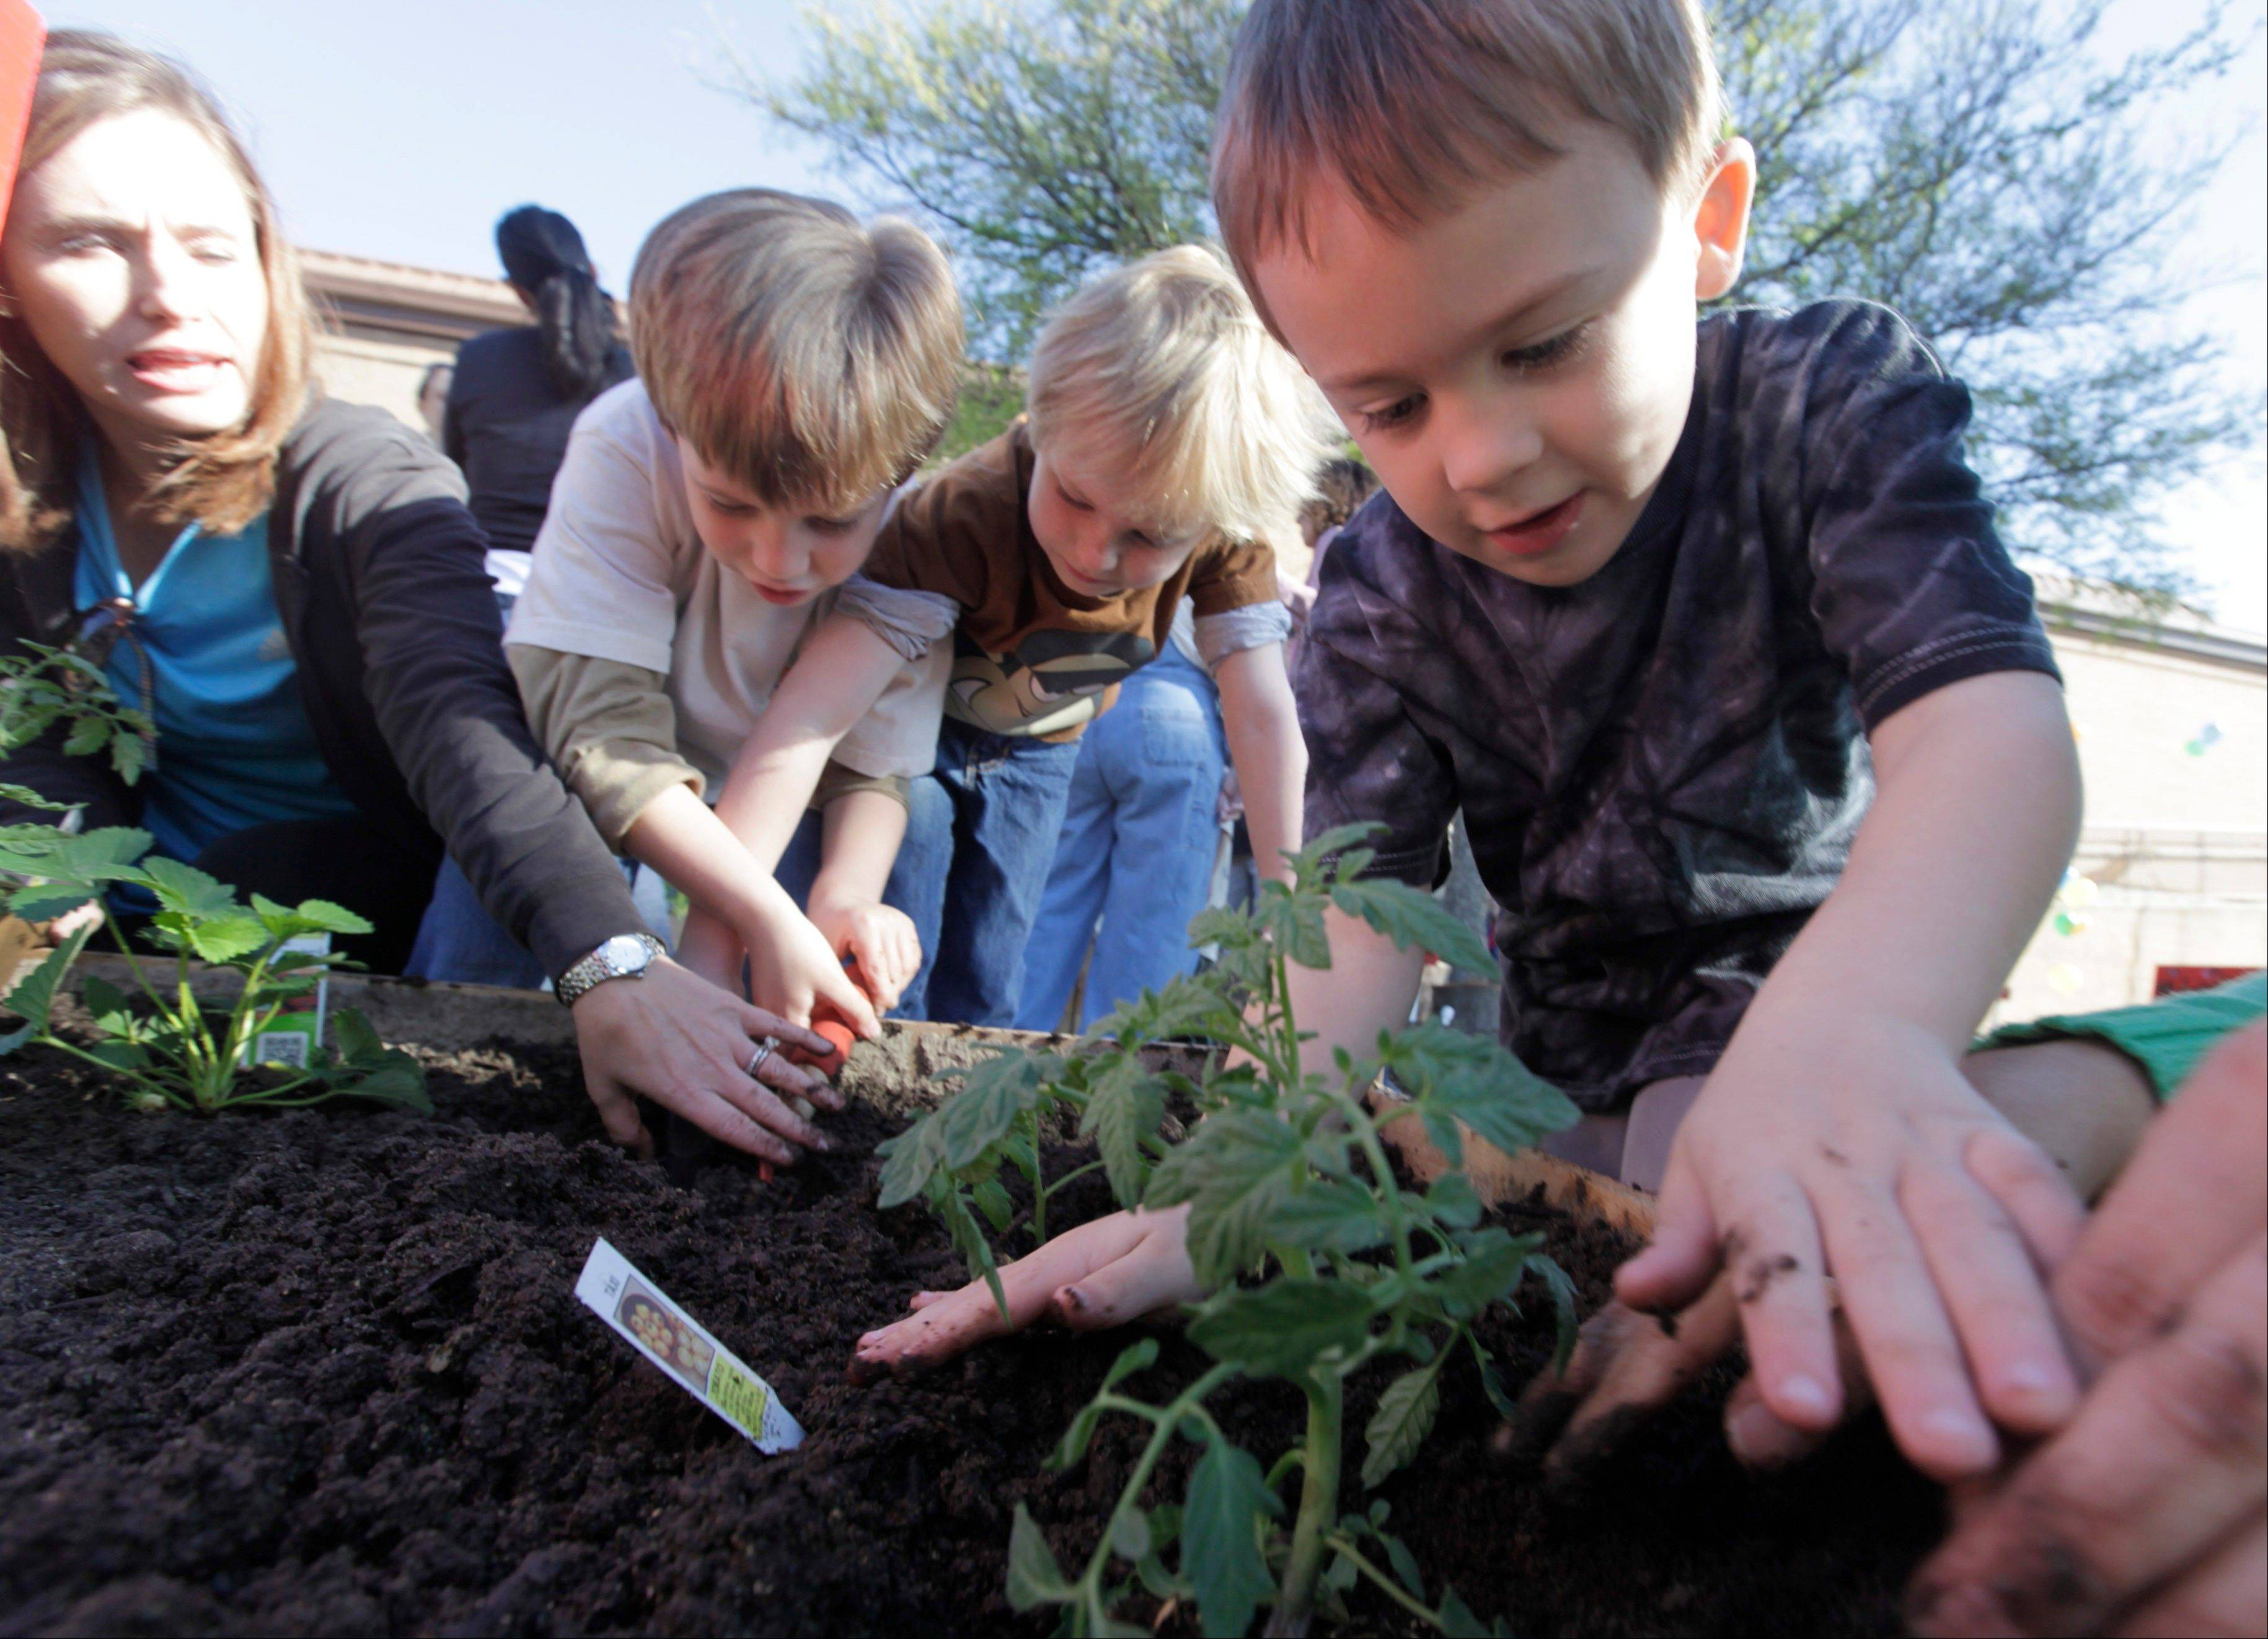 Kindergartner Ryan Crawford, 5, right, plants vegetables with fellow students at Moss Haven Elementary school in Dallas, Texas. Gardens planted in schoolyards nationally are intended to encourage healthier eating, and also teach young students about the environment, science, teamwork, math and leadership.